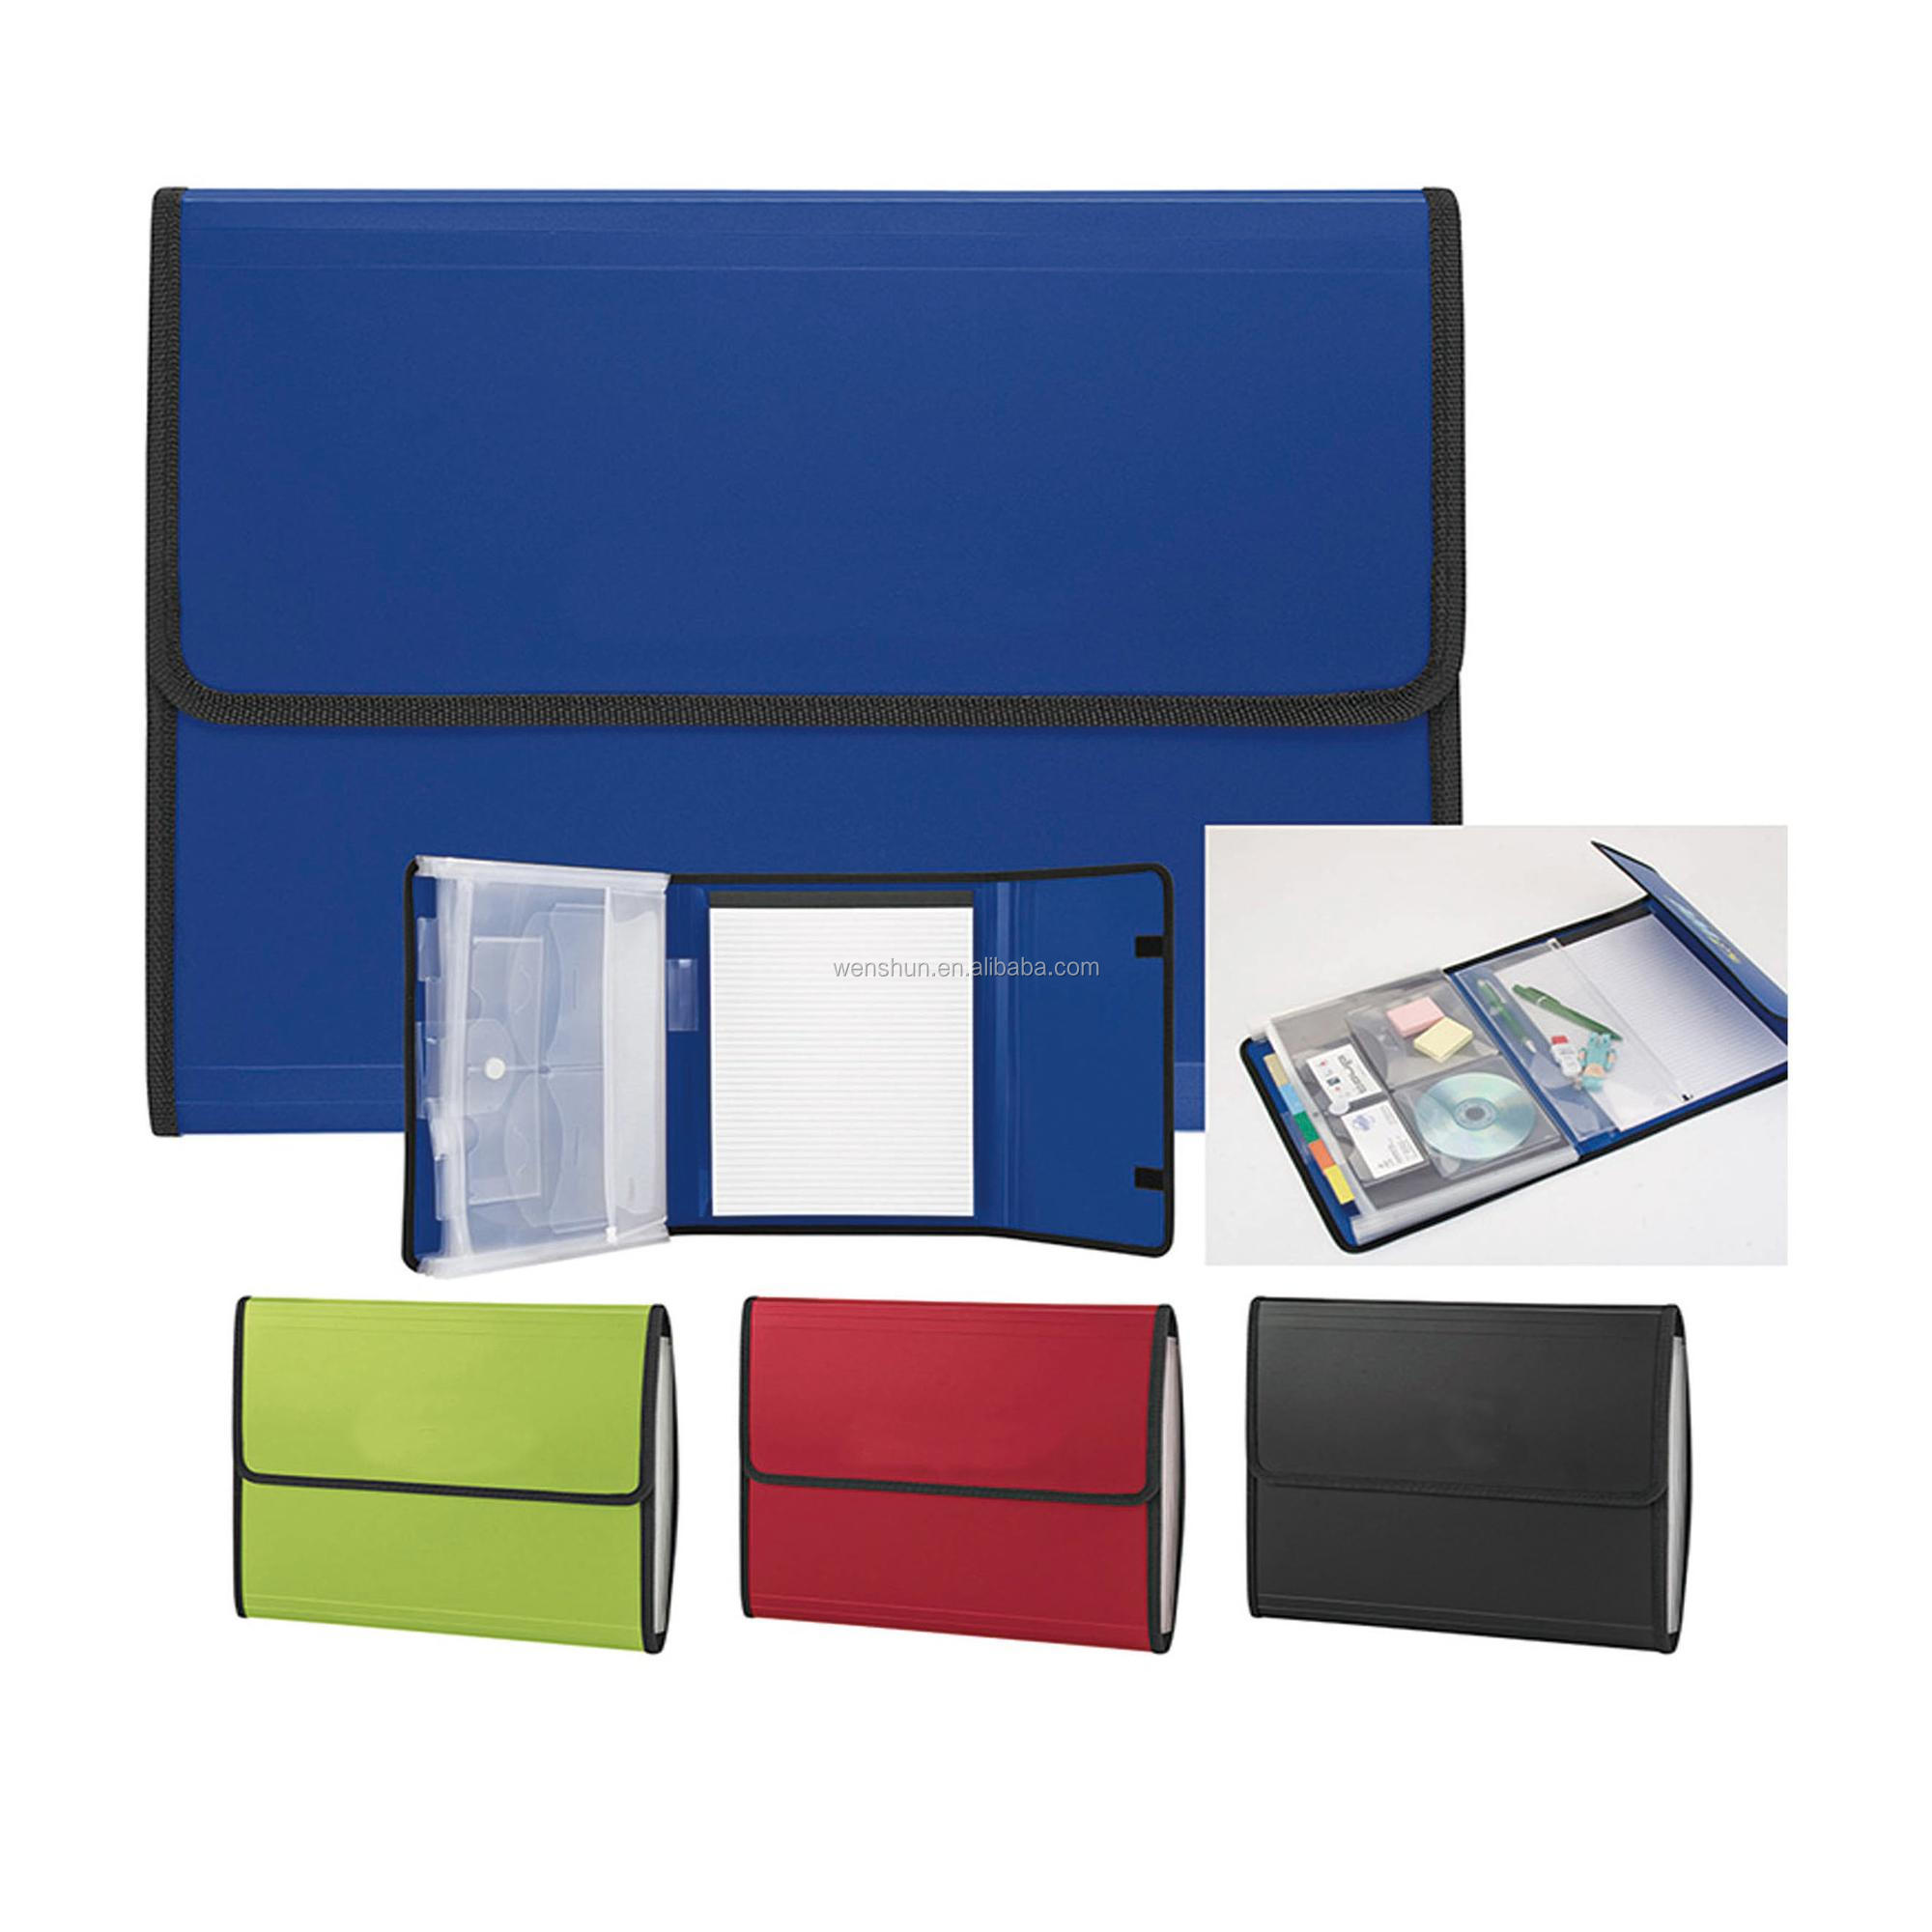 Promotional Plastic PP Material Pocket Expanding File Folder With Sewing Edge